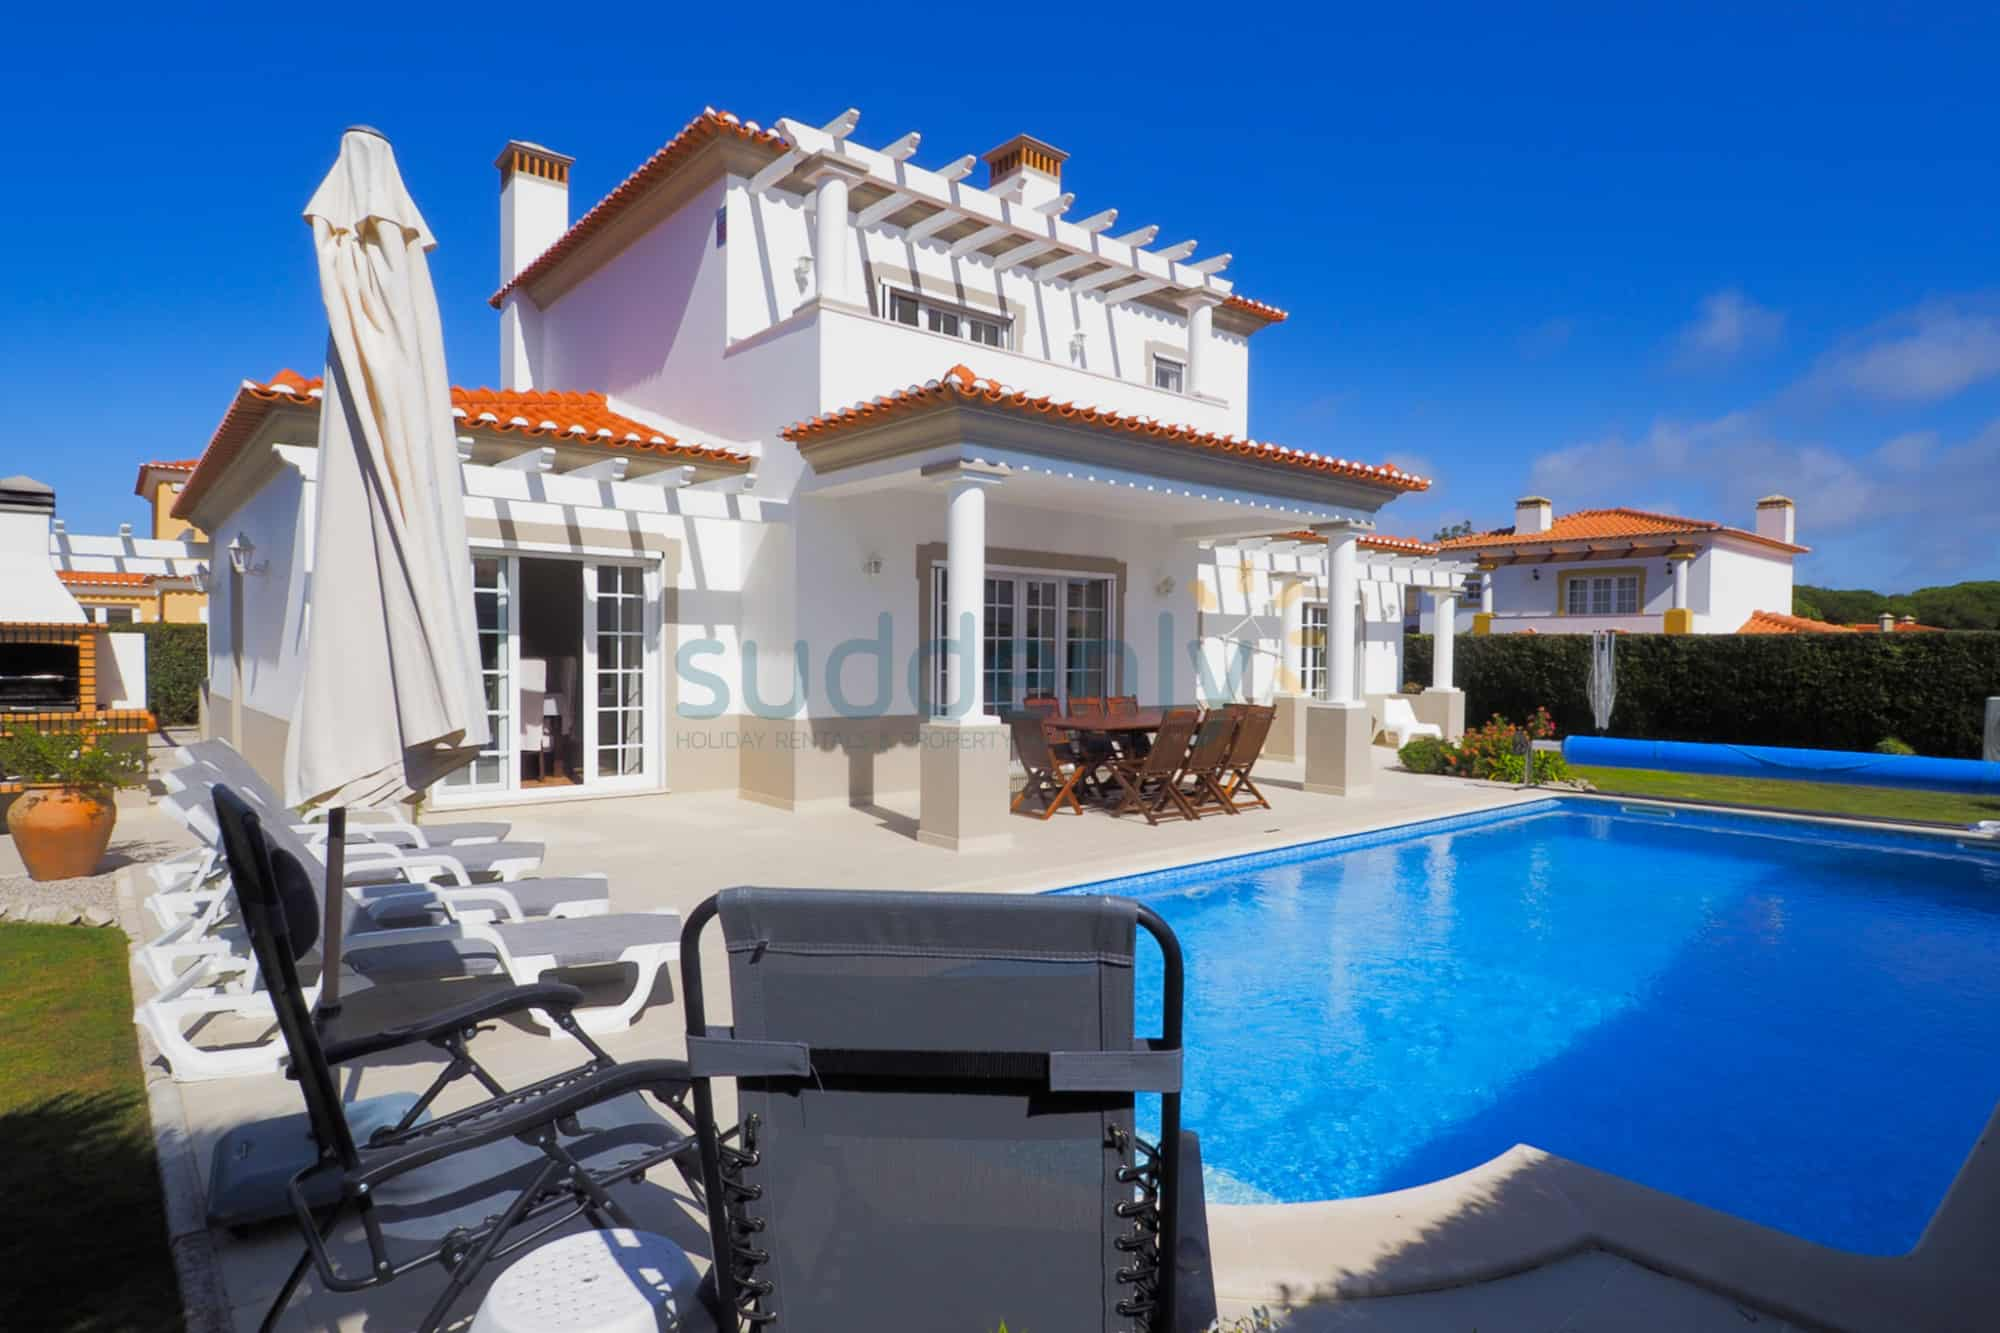 Holiday Rentals in Praia D'El Rey 379